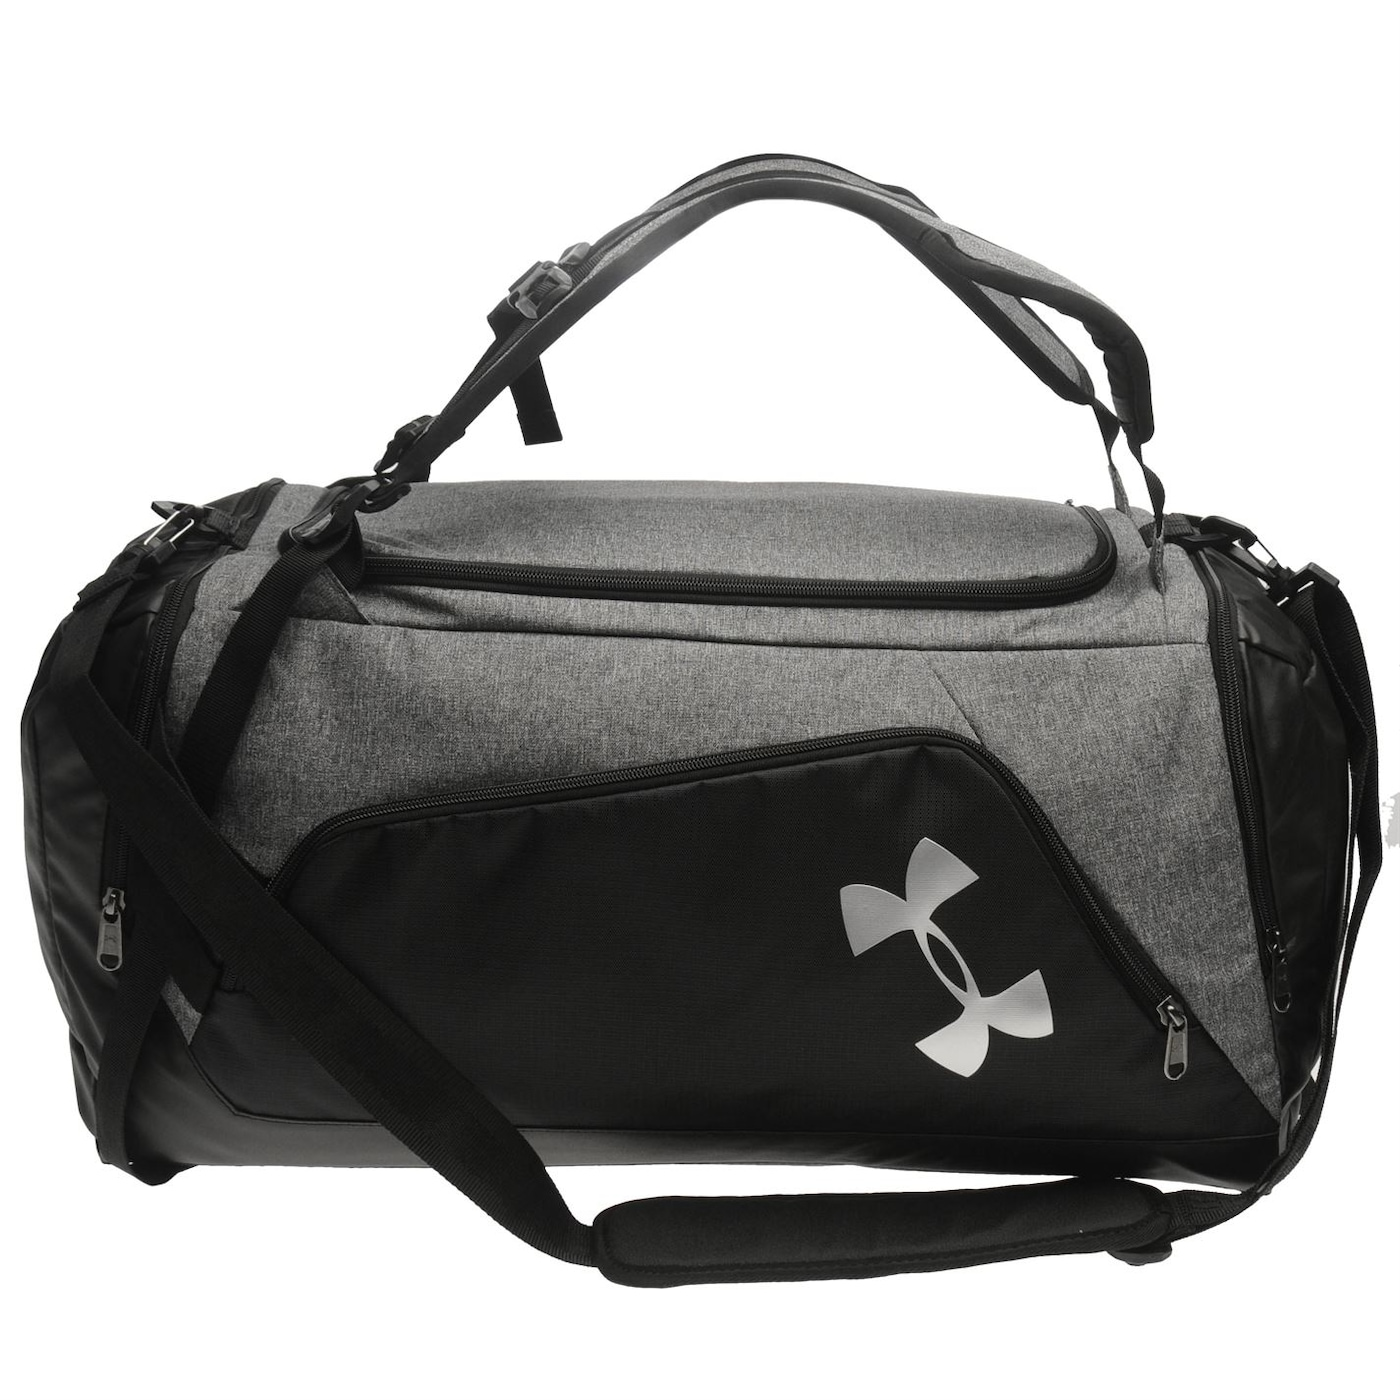 Under Armour Contain Duo Duffel Bag